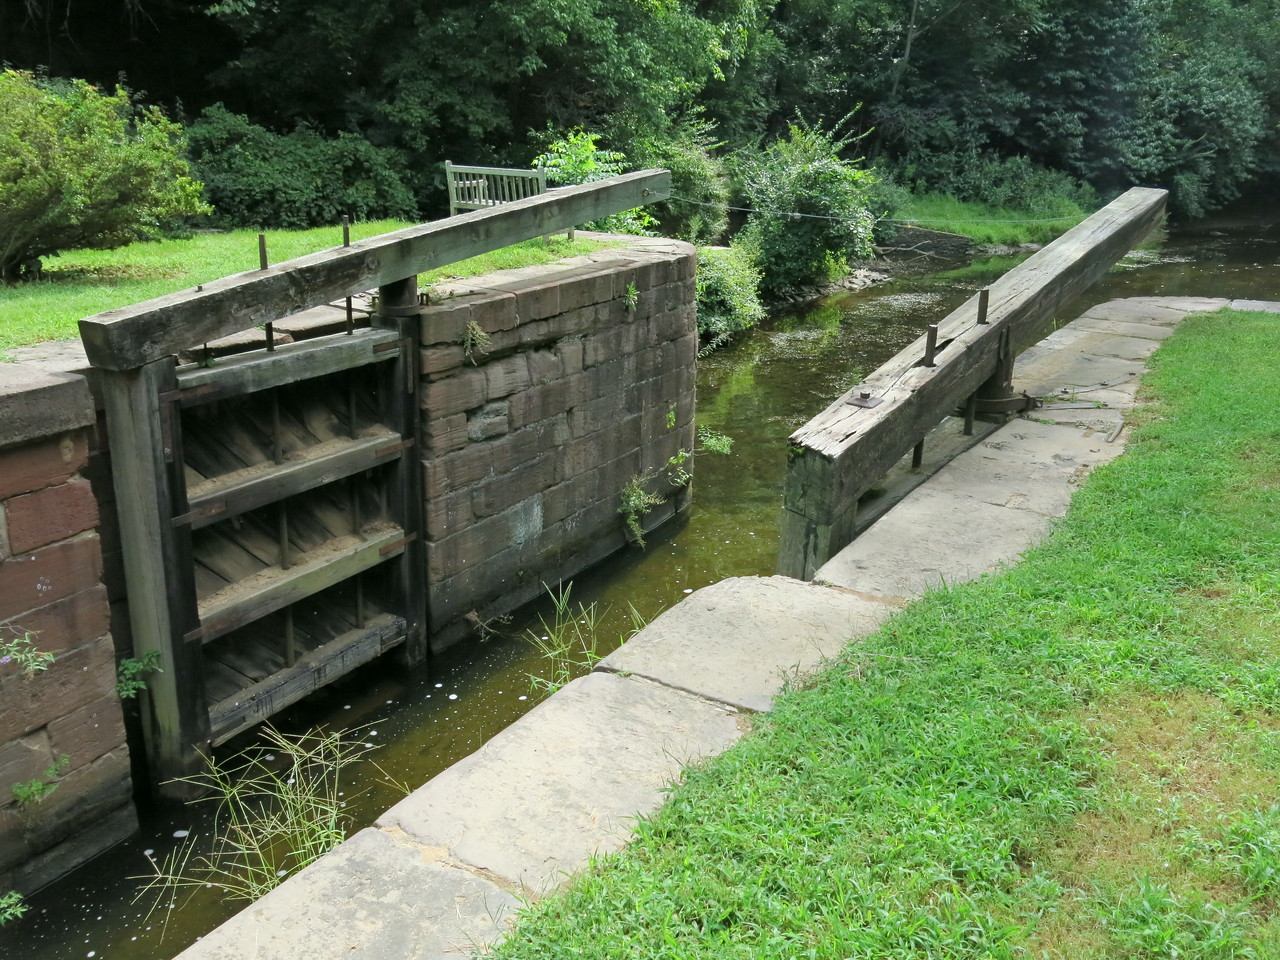 Another view of the downstream gate at Lock 21